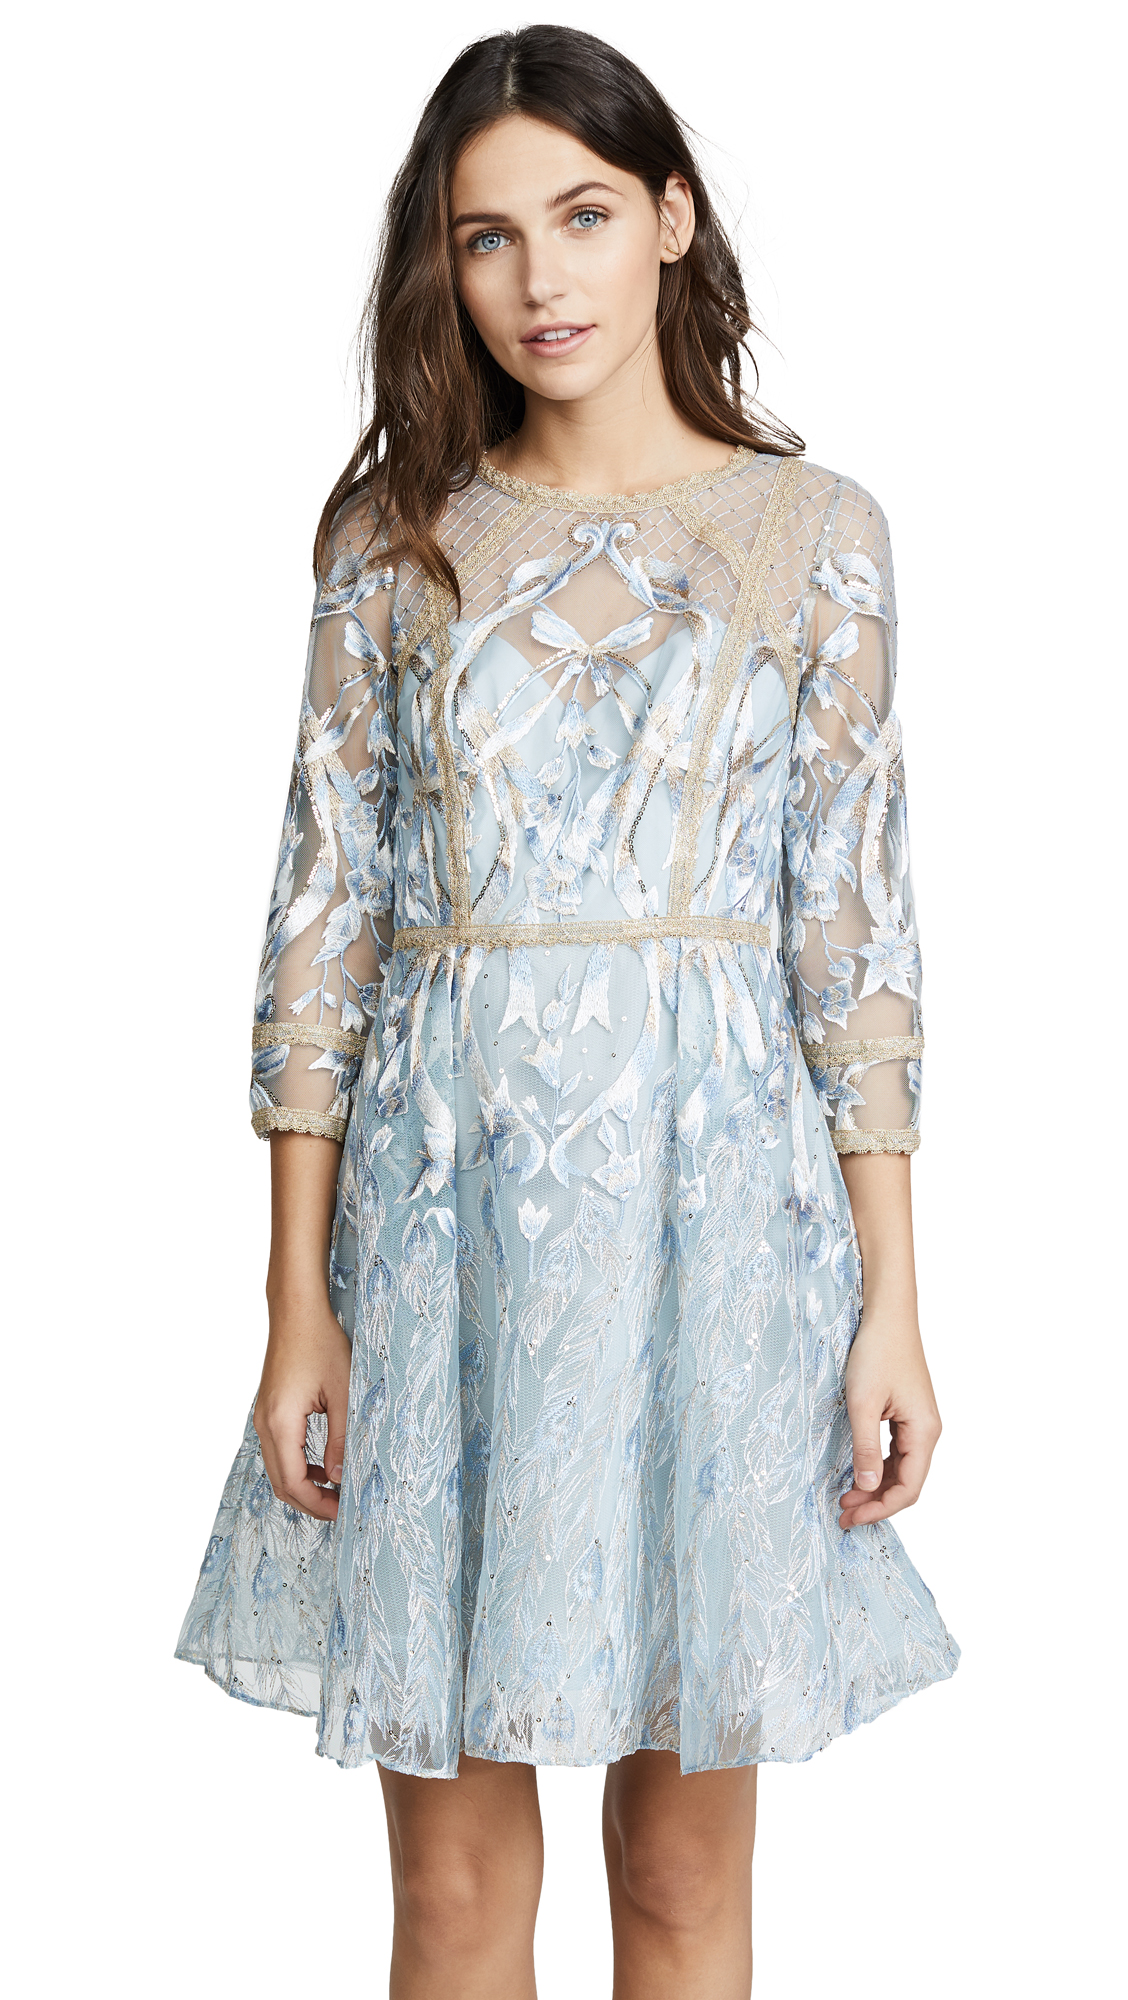 COCKTAIL DRESS WITH METALLIC LACE TRIM